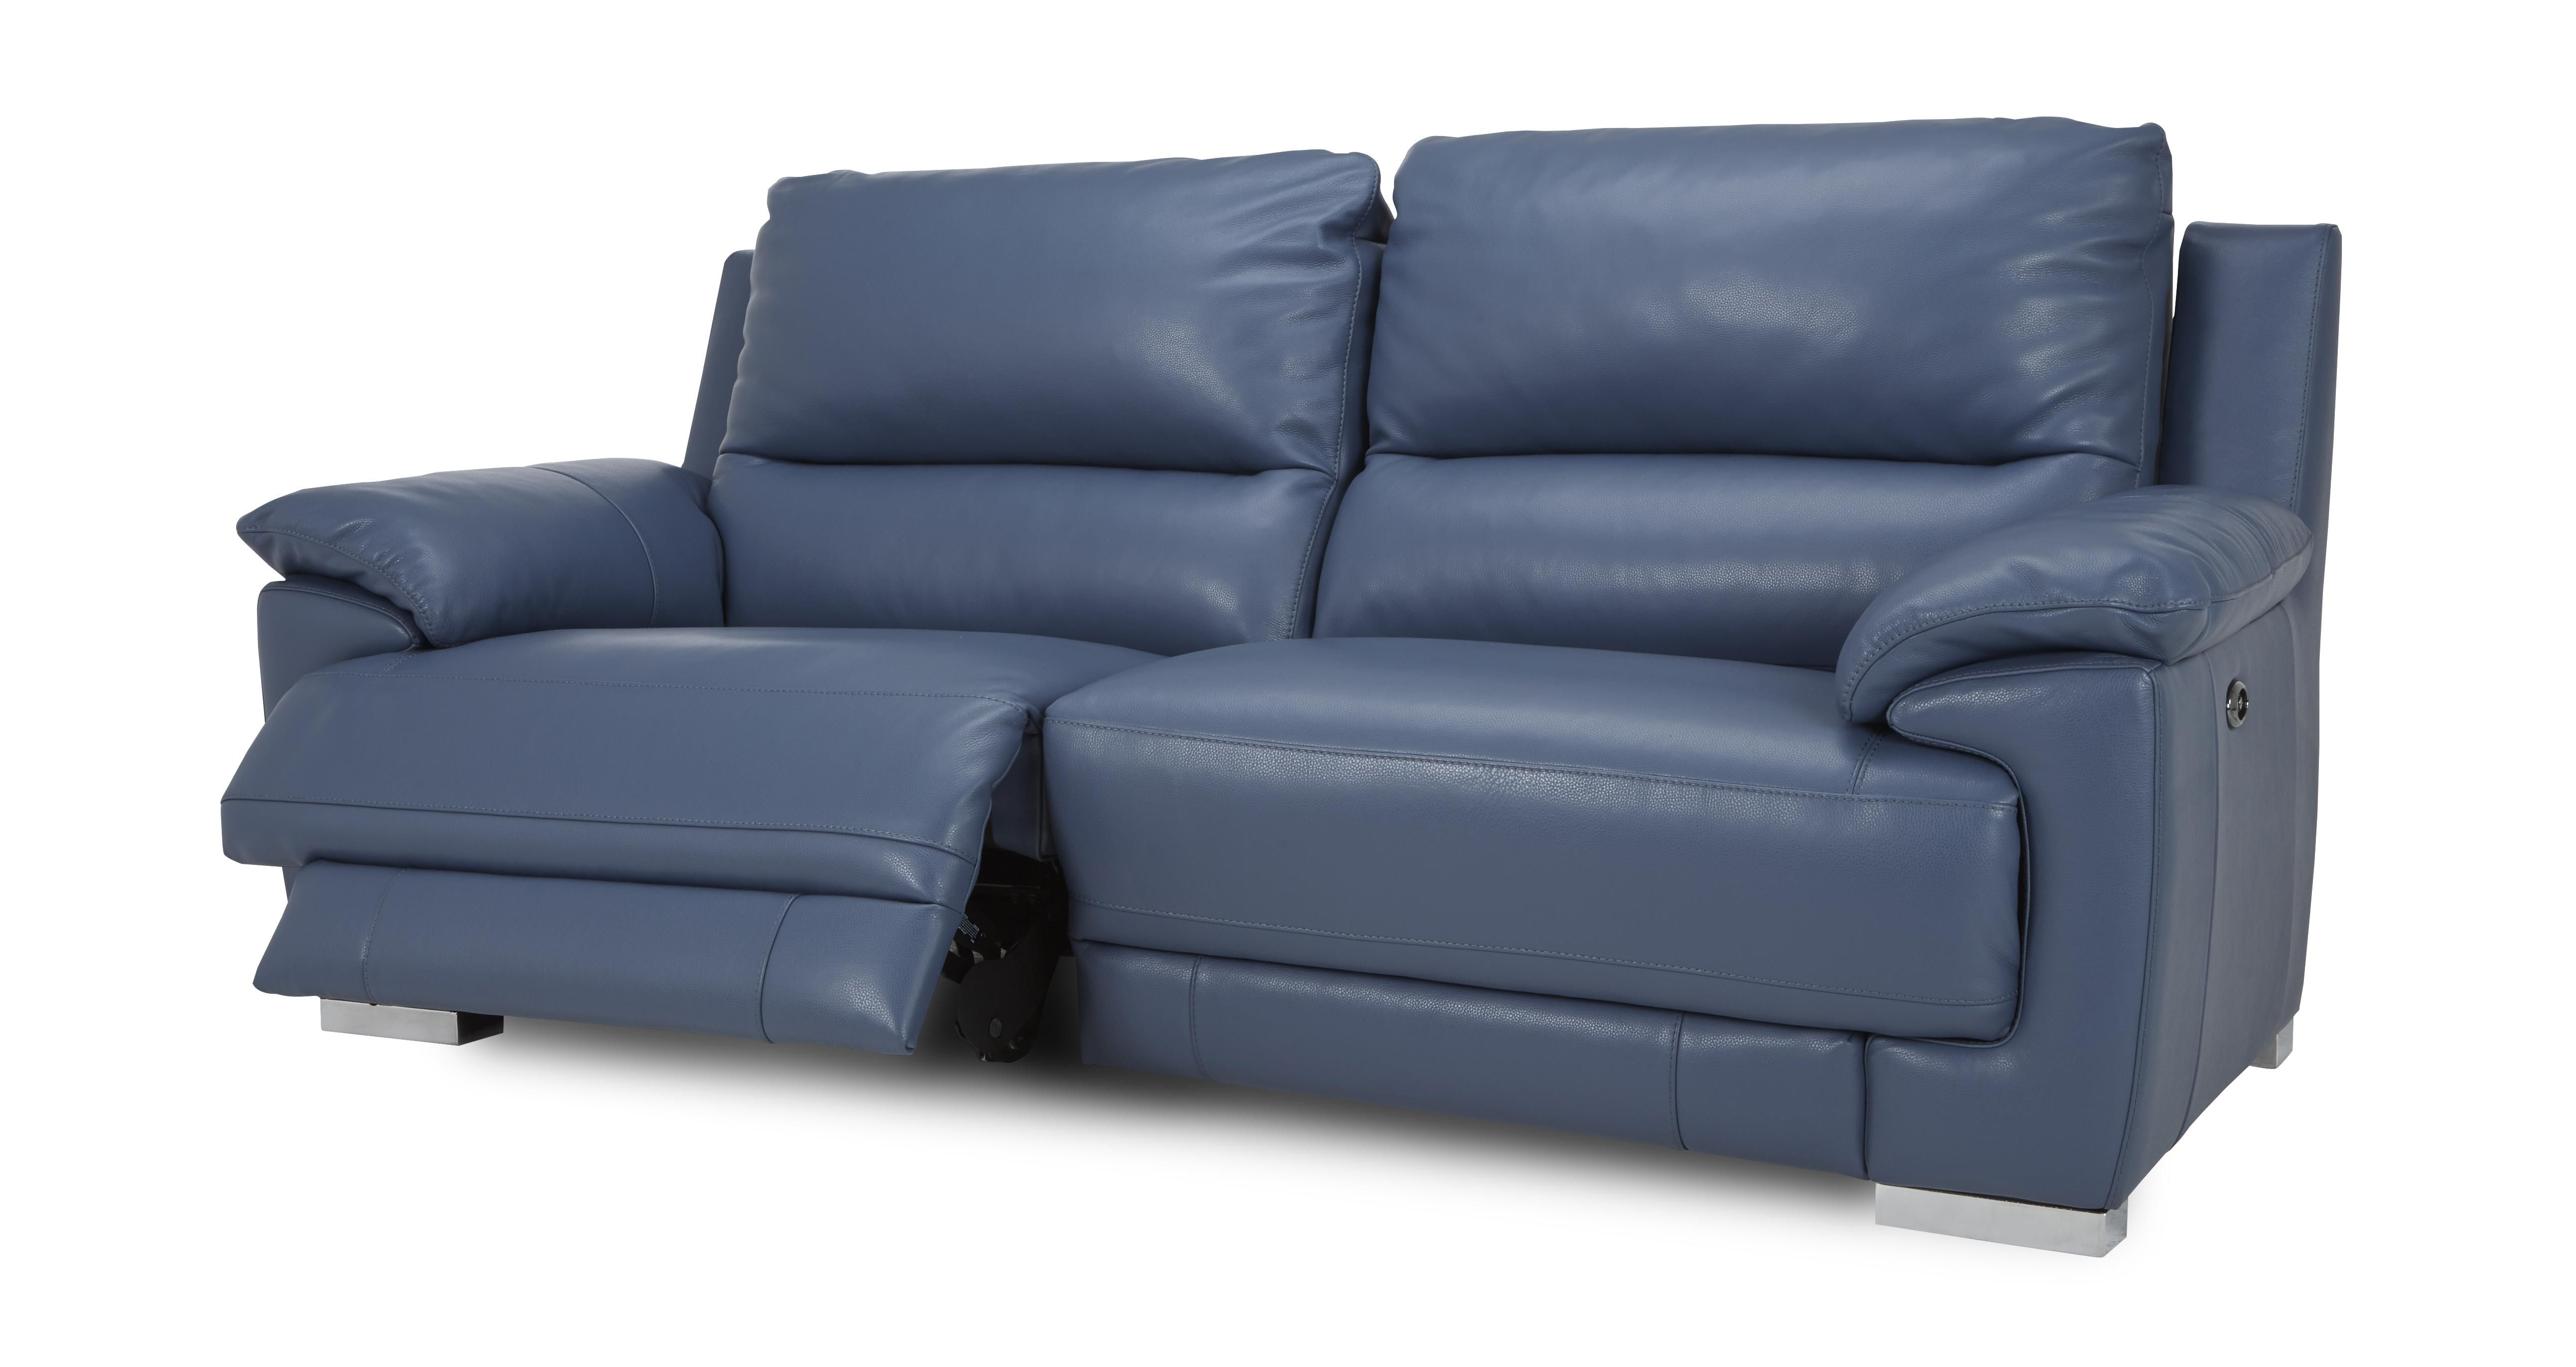 The Perfect Blue Reclining Sofa Designs For Your Living Space Modular Corner Sofa Blue Leather Sofa Leather Corner Sofa